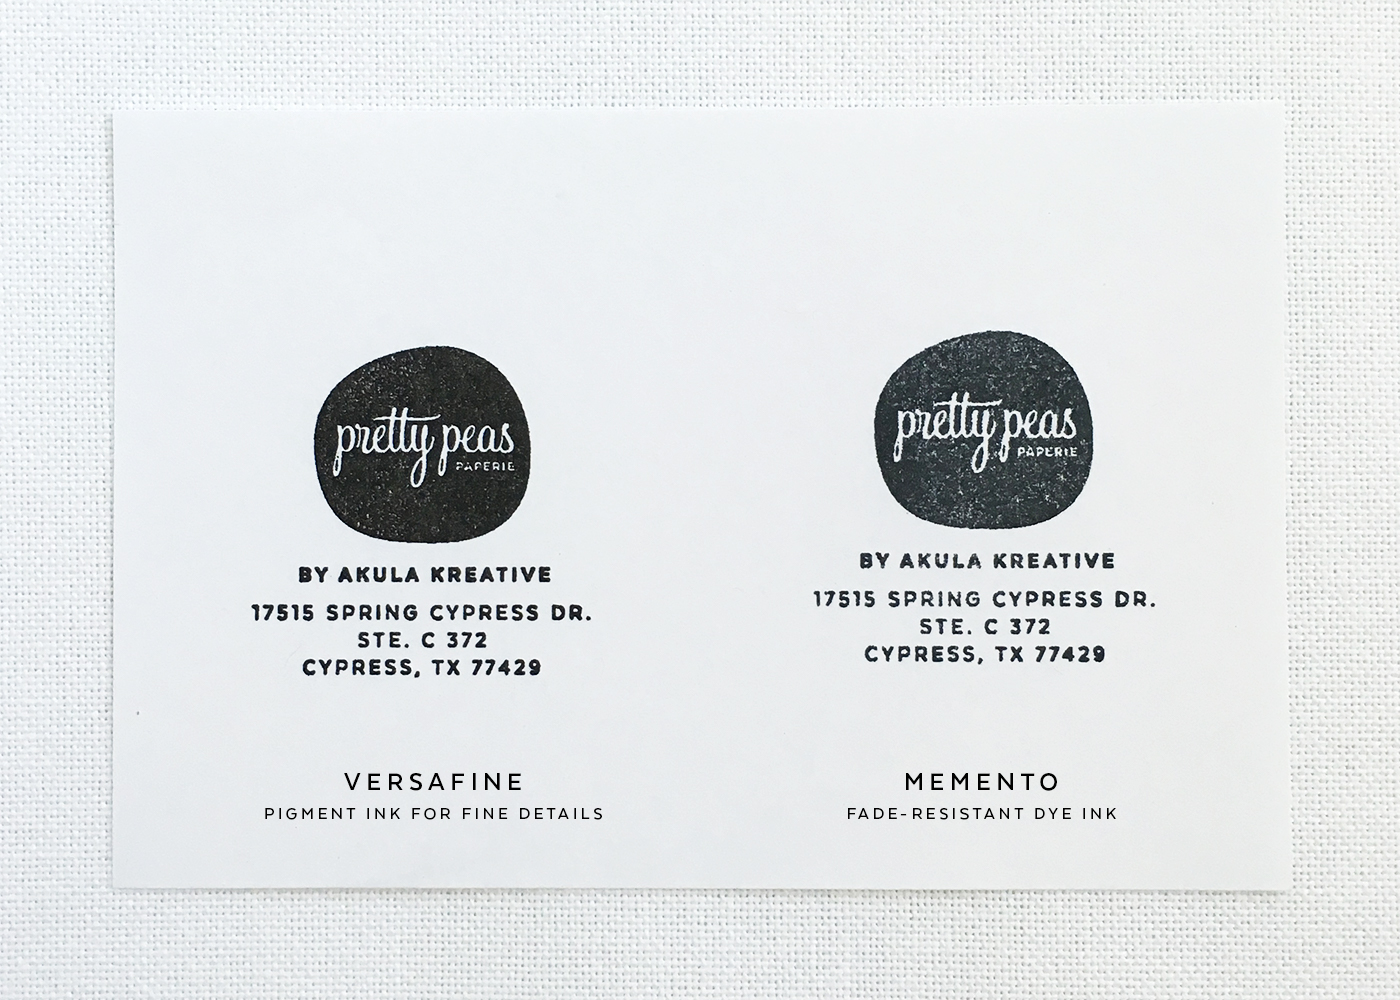 Black Stamp Pad Comparison | Copy Paper (VersaFine is excellent for tiny text and solids!)